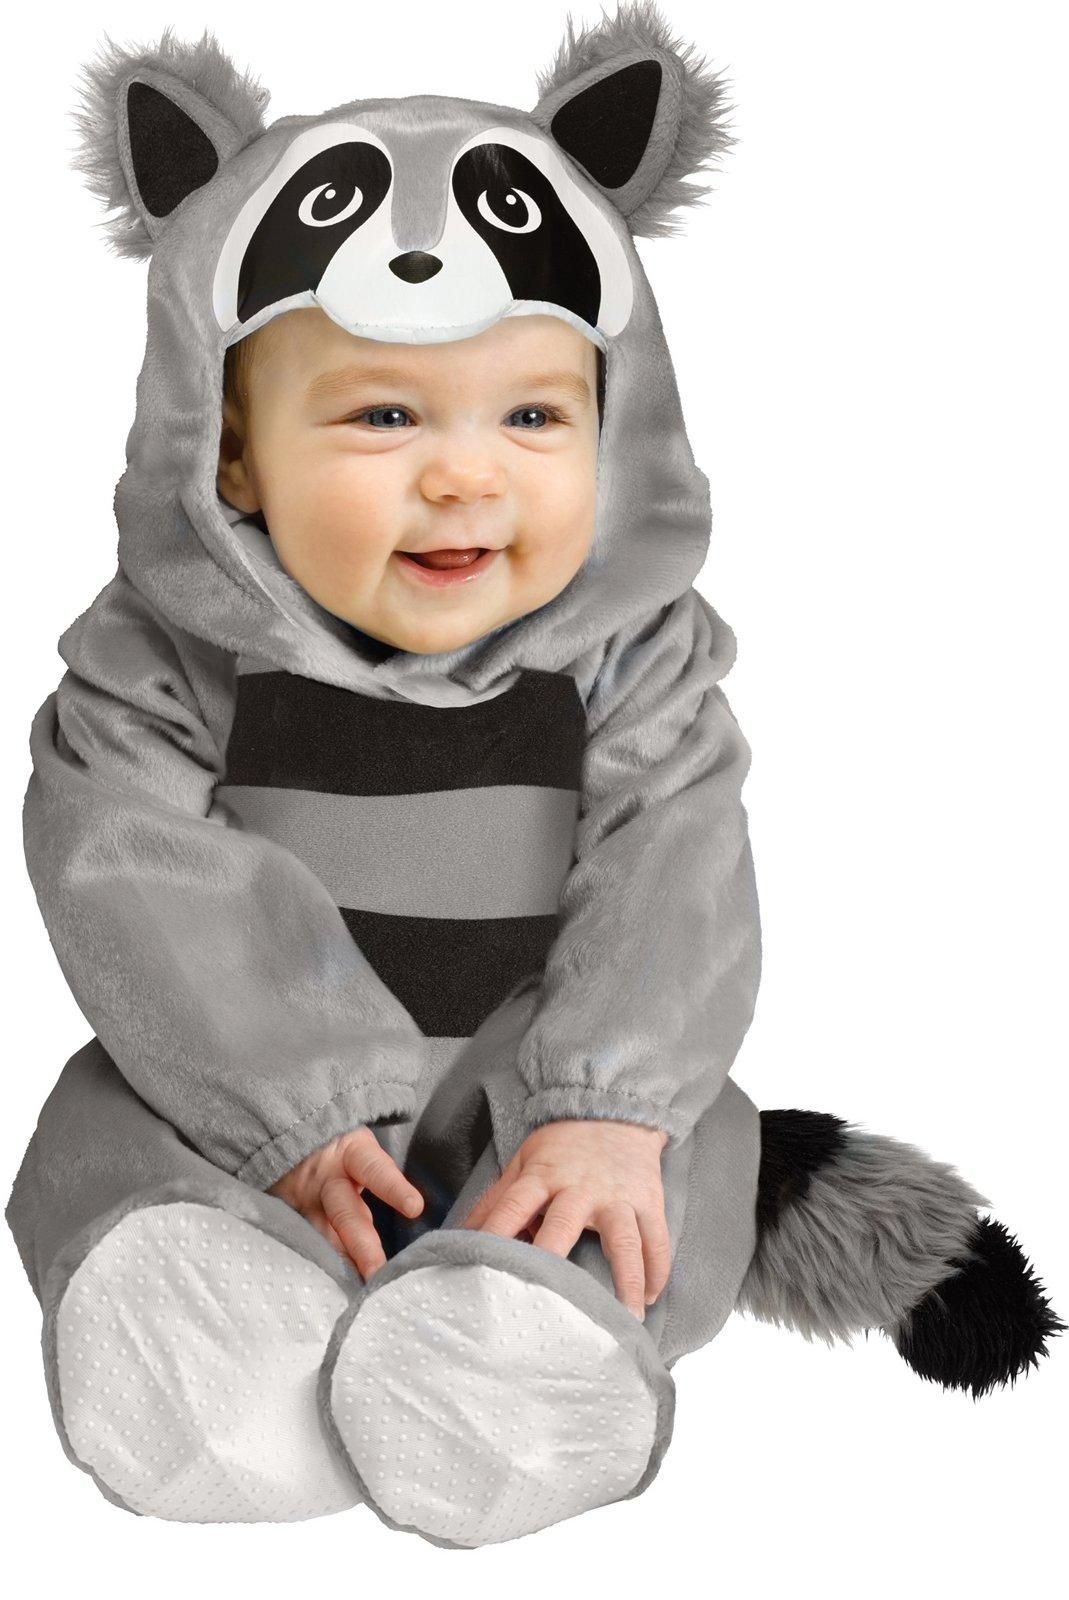 45c3df027 Baby Raccoon Costume for Toddlers